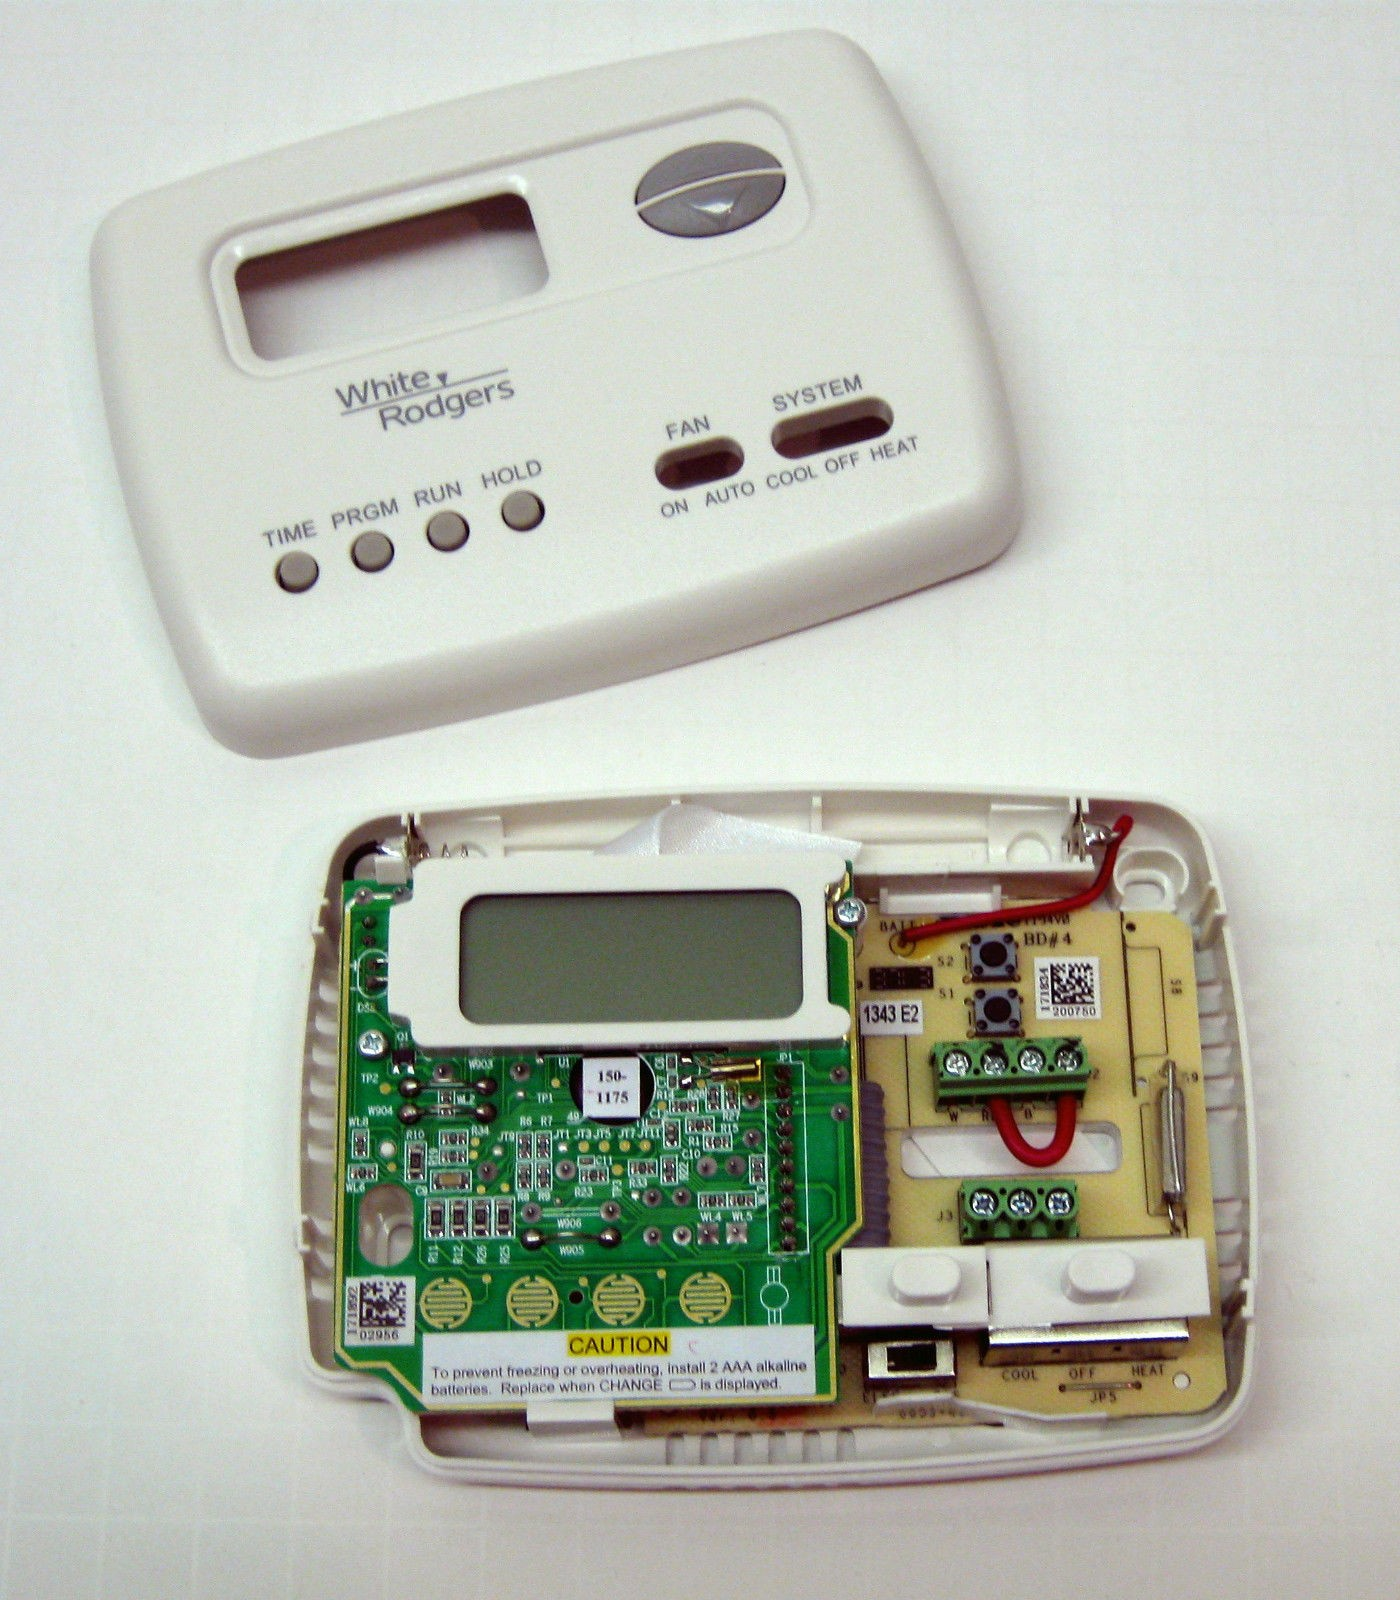 white rodgers thermostat manuals 1f78 144 free owners manual u2022 rh infomanualguide today White Rodgers Programmable Thermostat Manual White Rodgers Thermostat 1F78